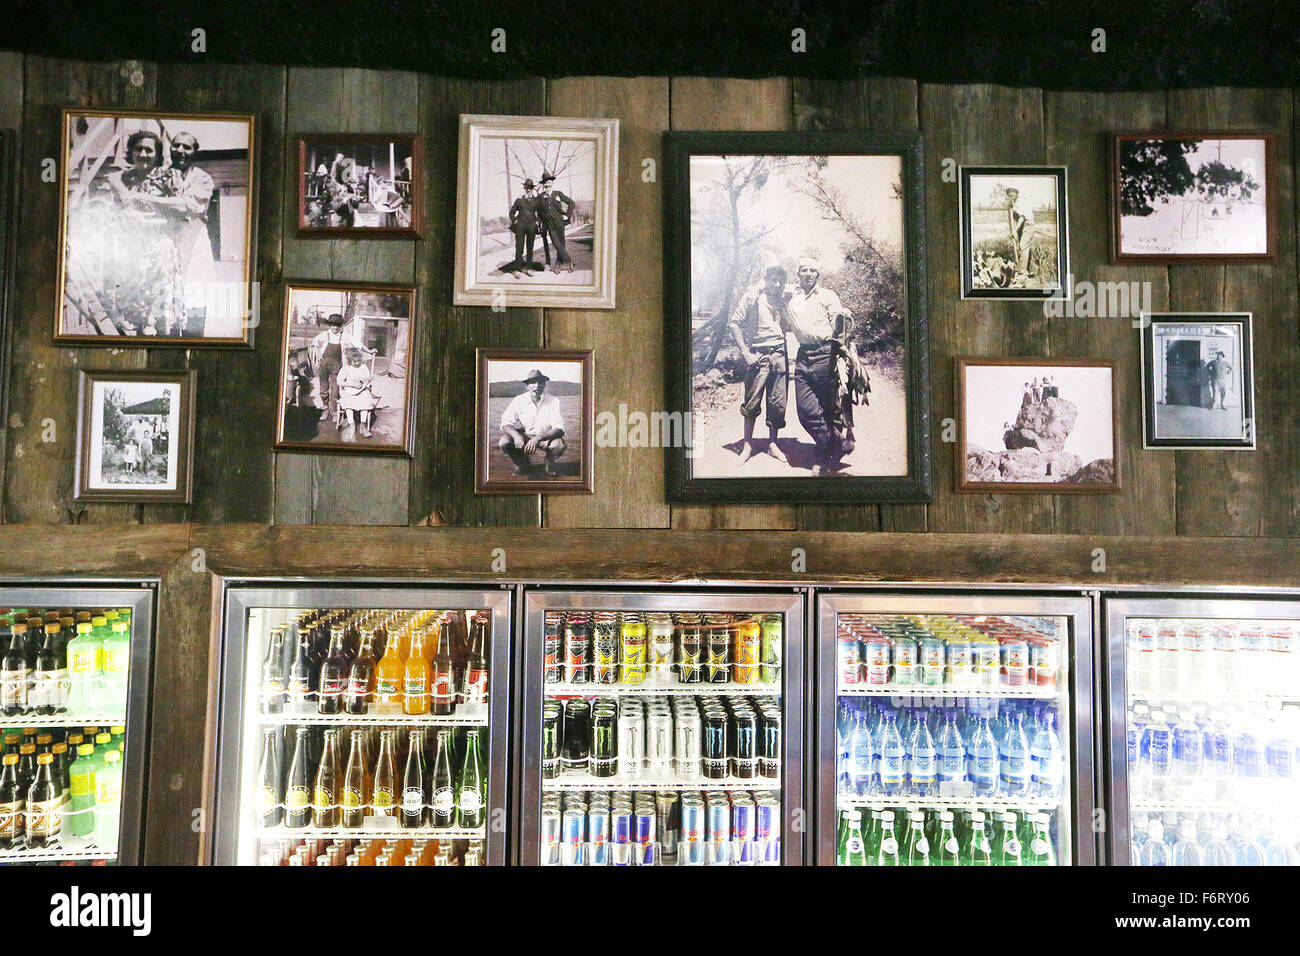 Nov. 13, 2015 - Napa, CA, U.S. - Family photos hang on the wall above the drink cooler at The Shed Napa Valley. - Stock Image